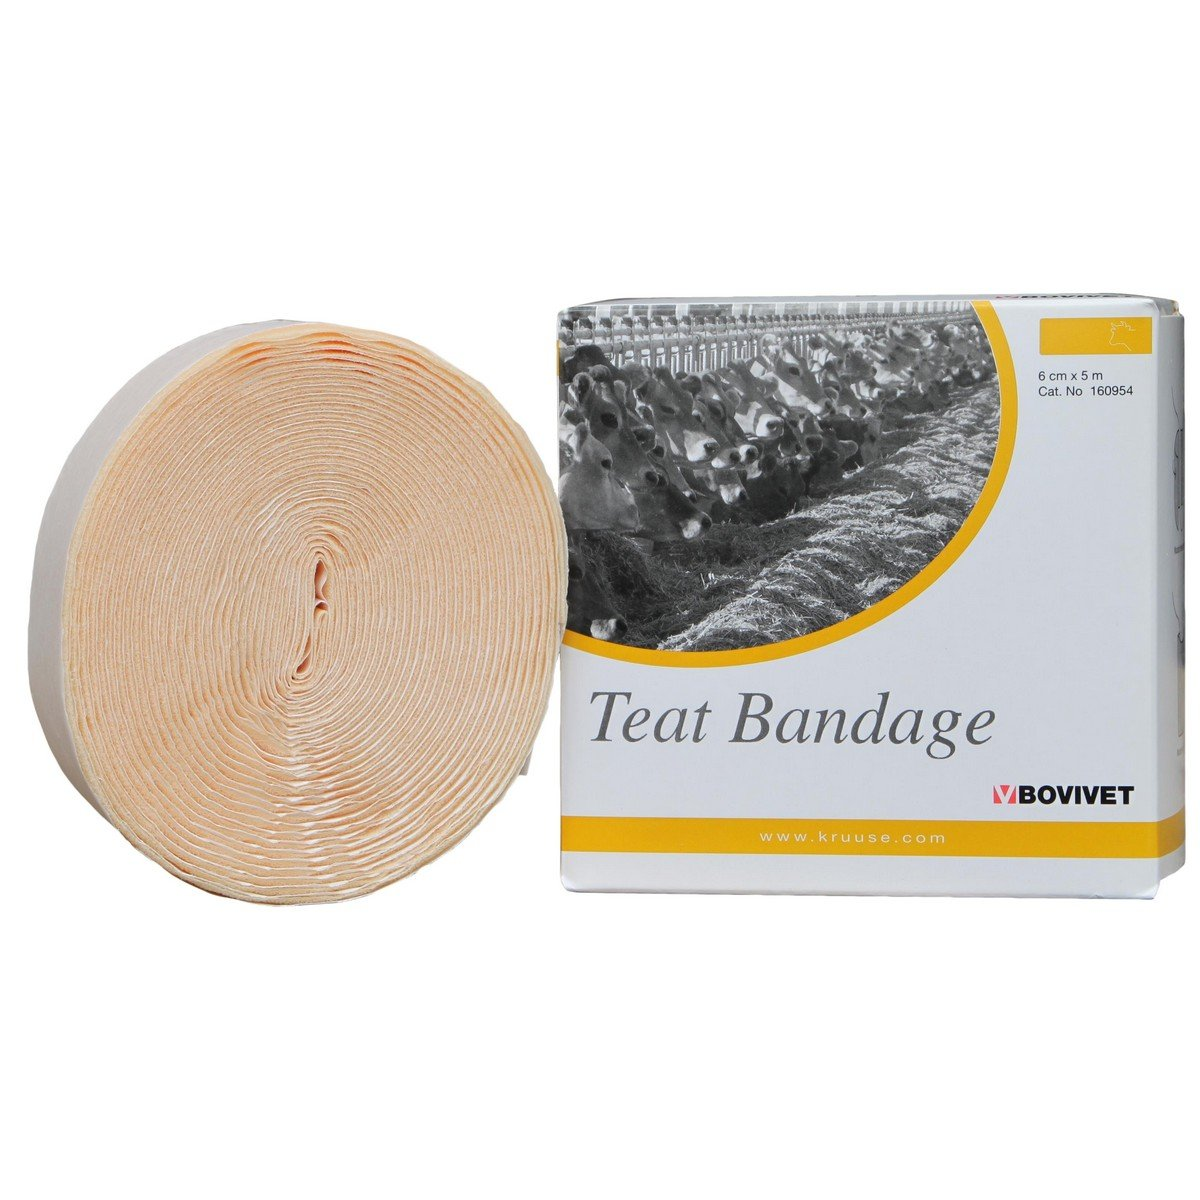 Imagem de Agradi Bandage for Teat injury